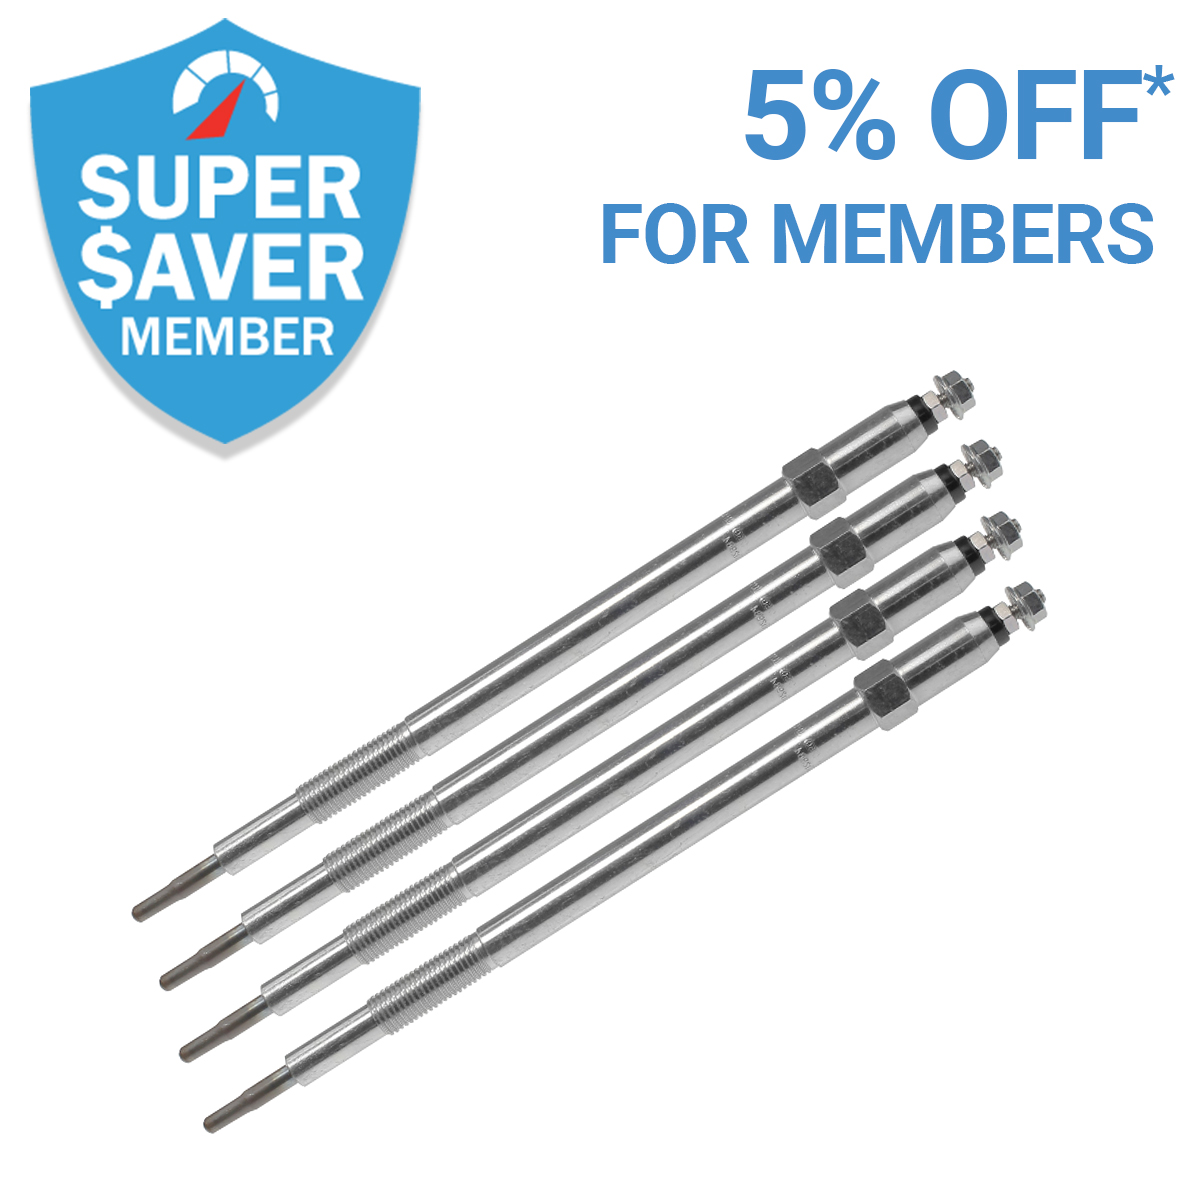 Get 5% Off* Glow Plugs As a Member